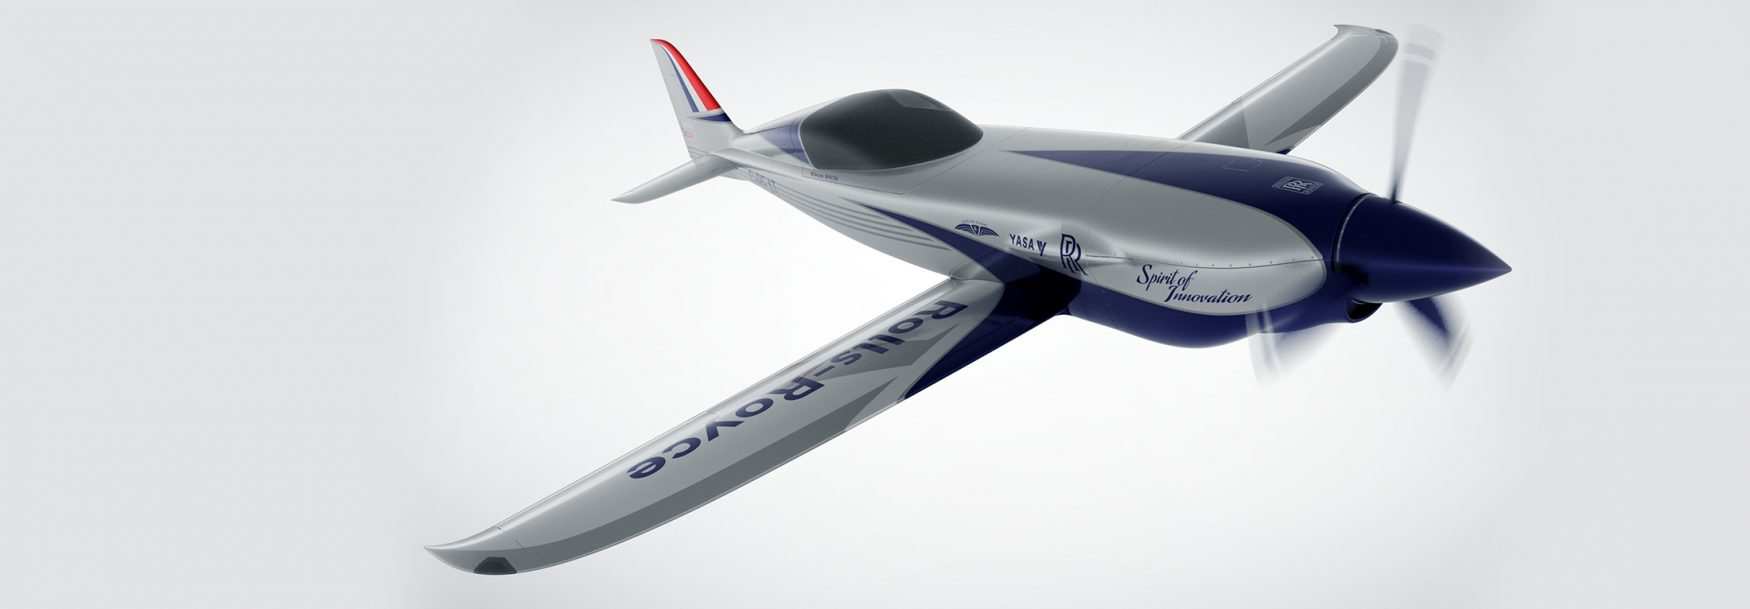 YASA – The World's Fastest Electric Powered Aeroplane